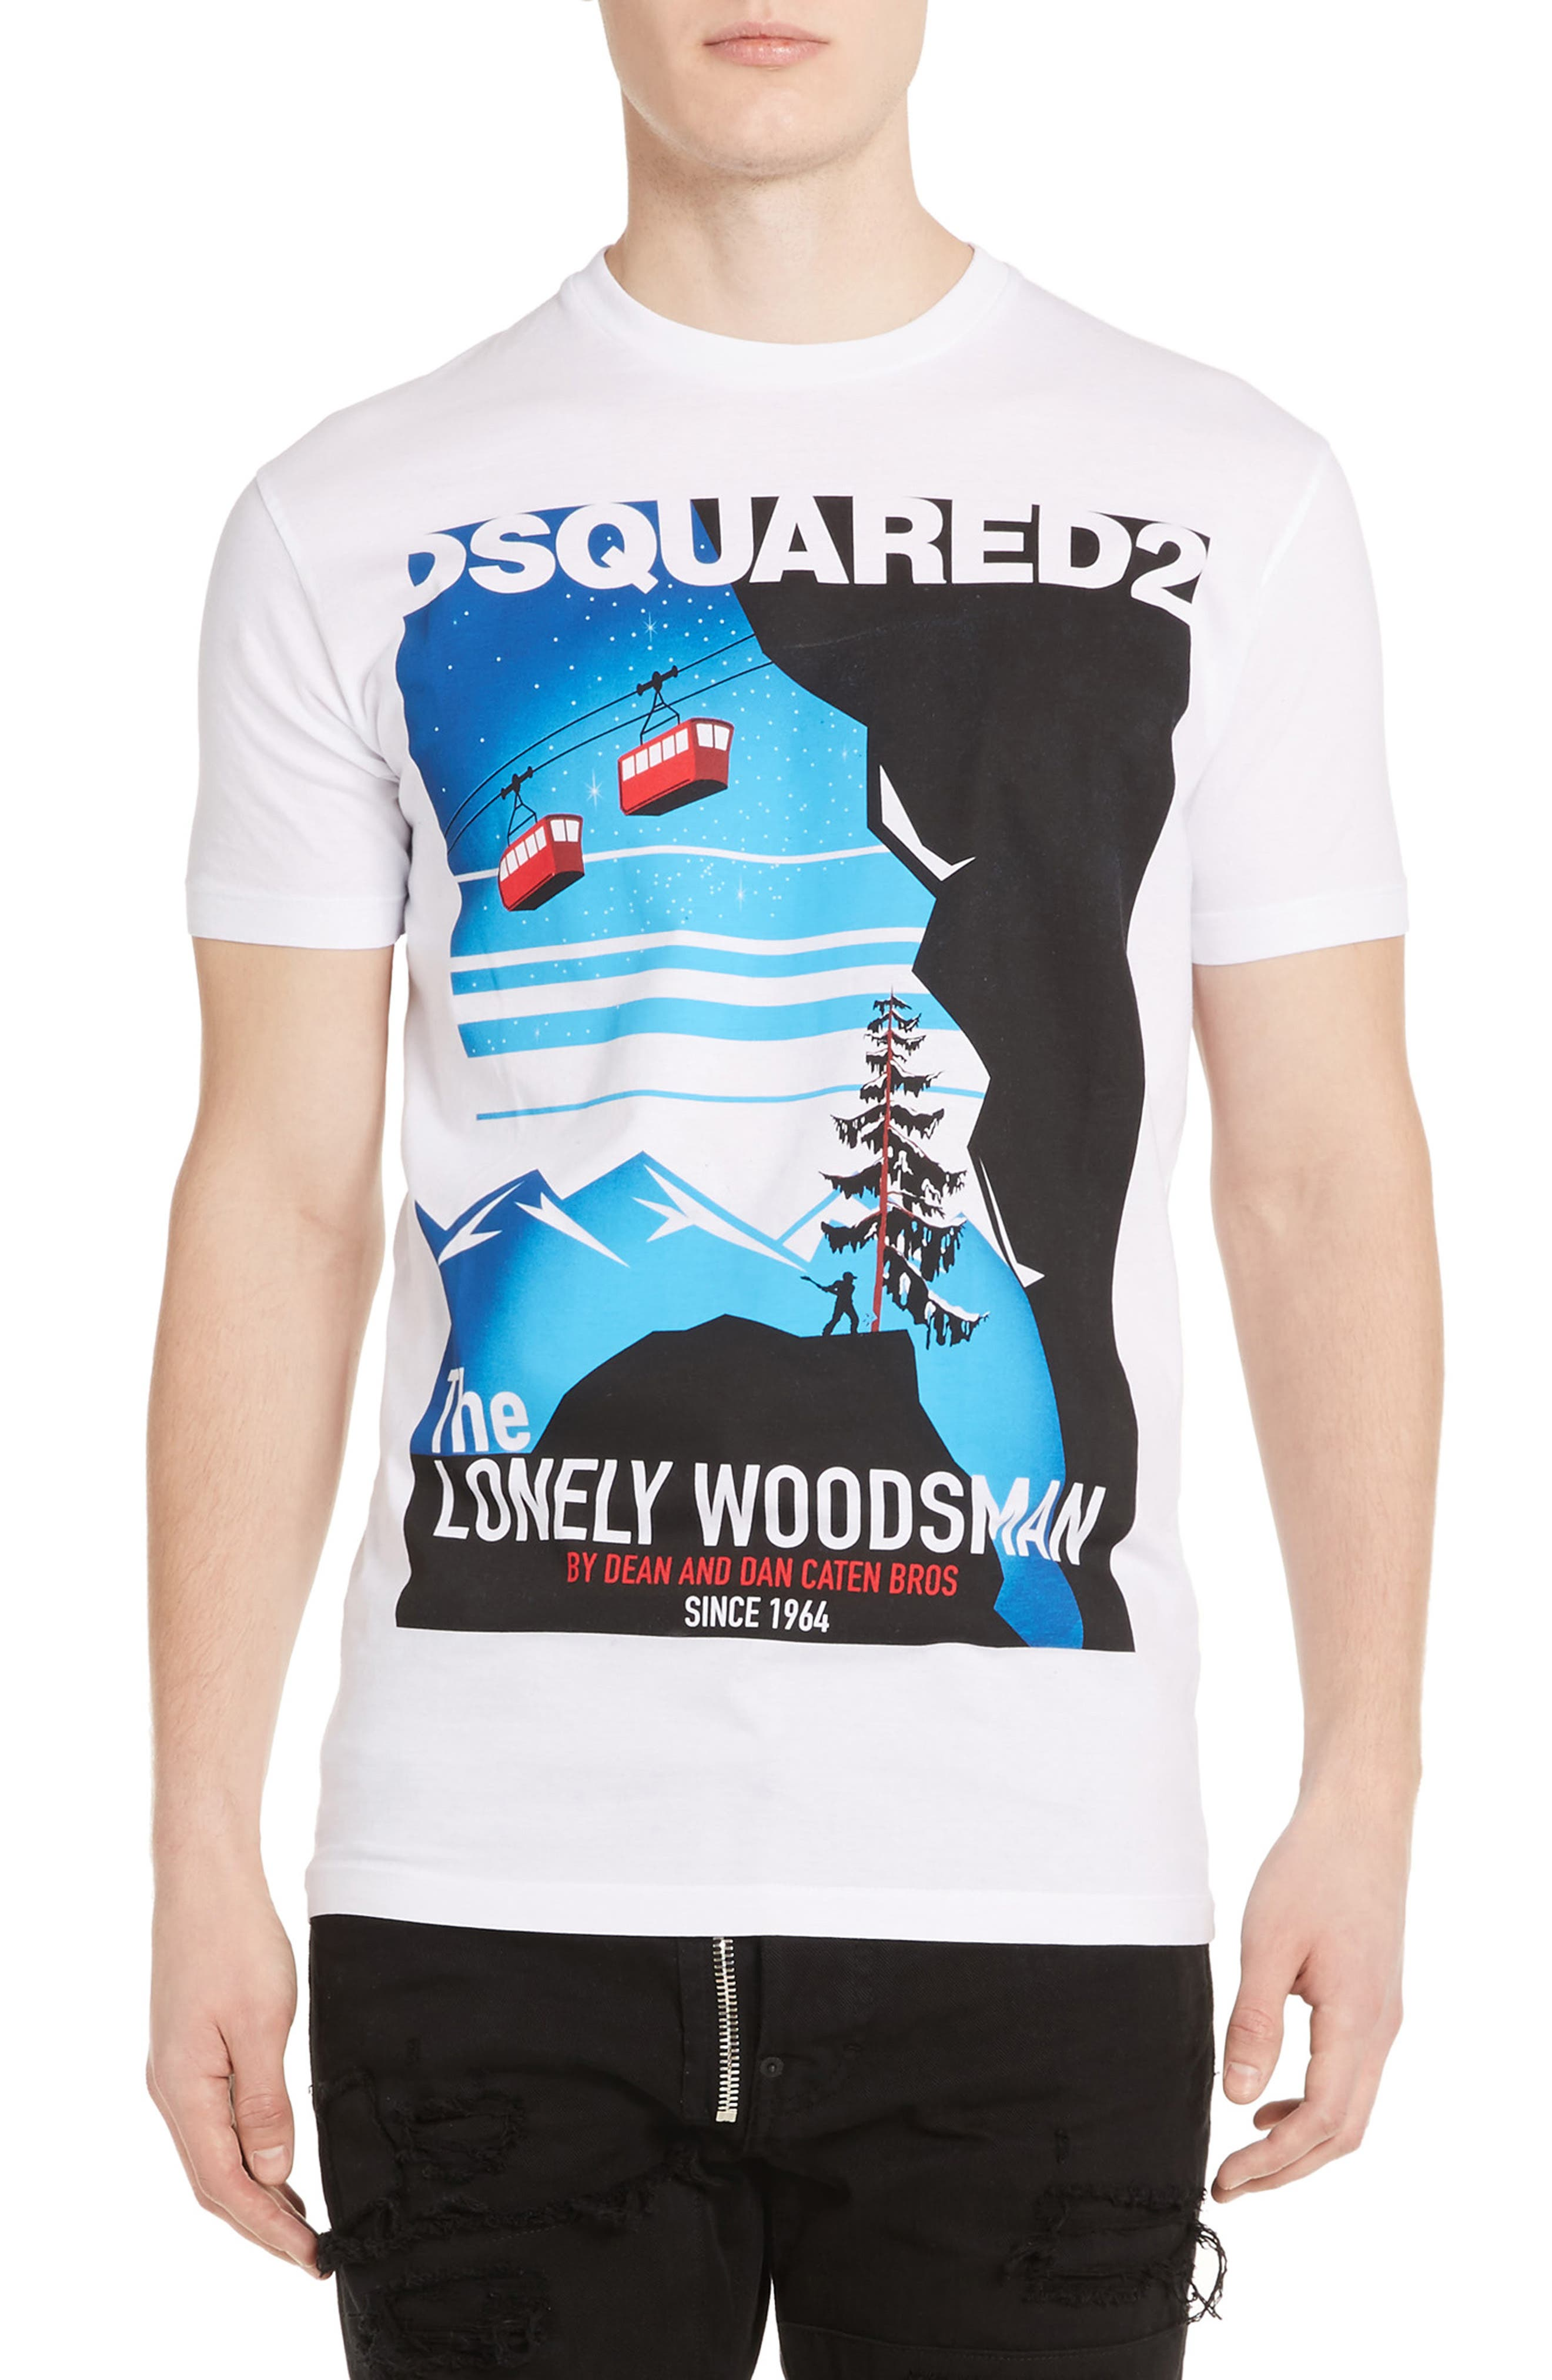 DSquared2 Lonely Woodsman Graphic T-Shirt